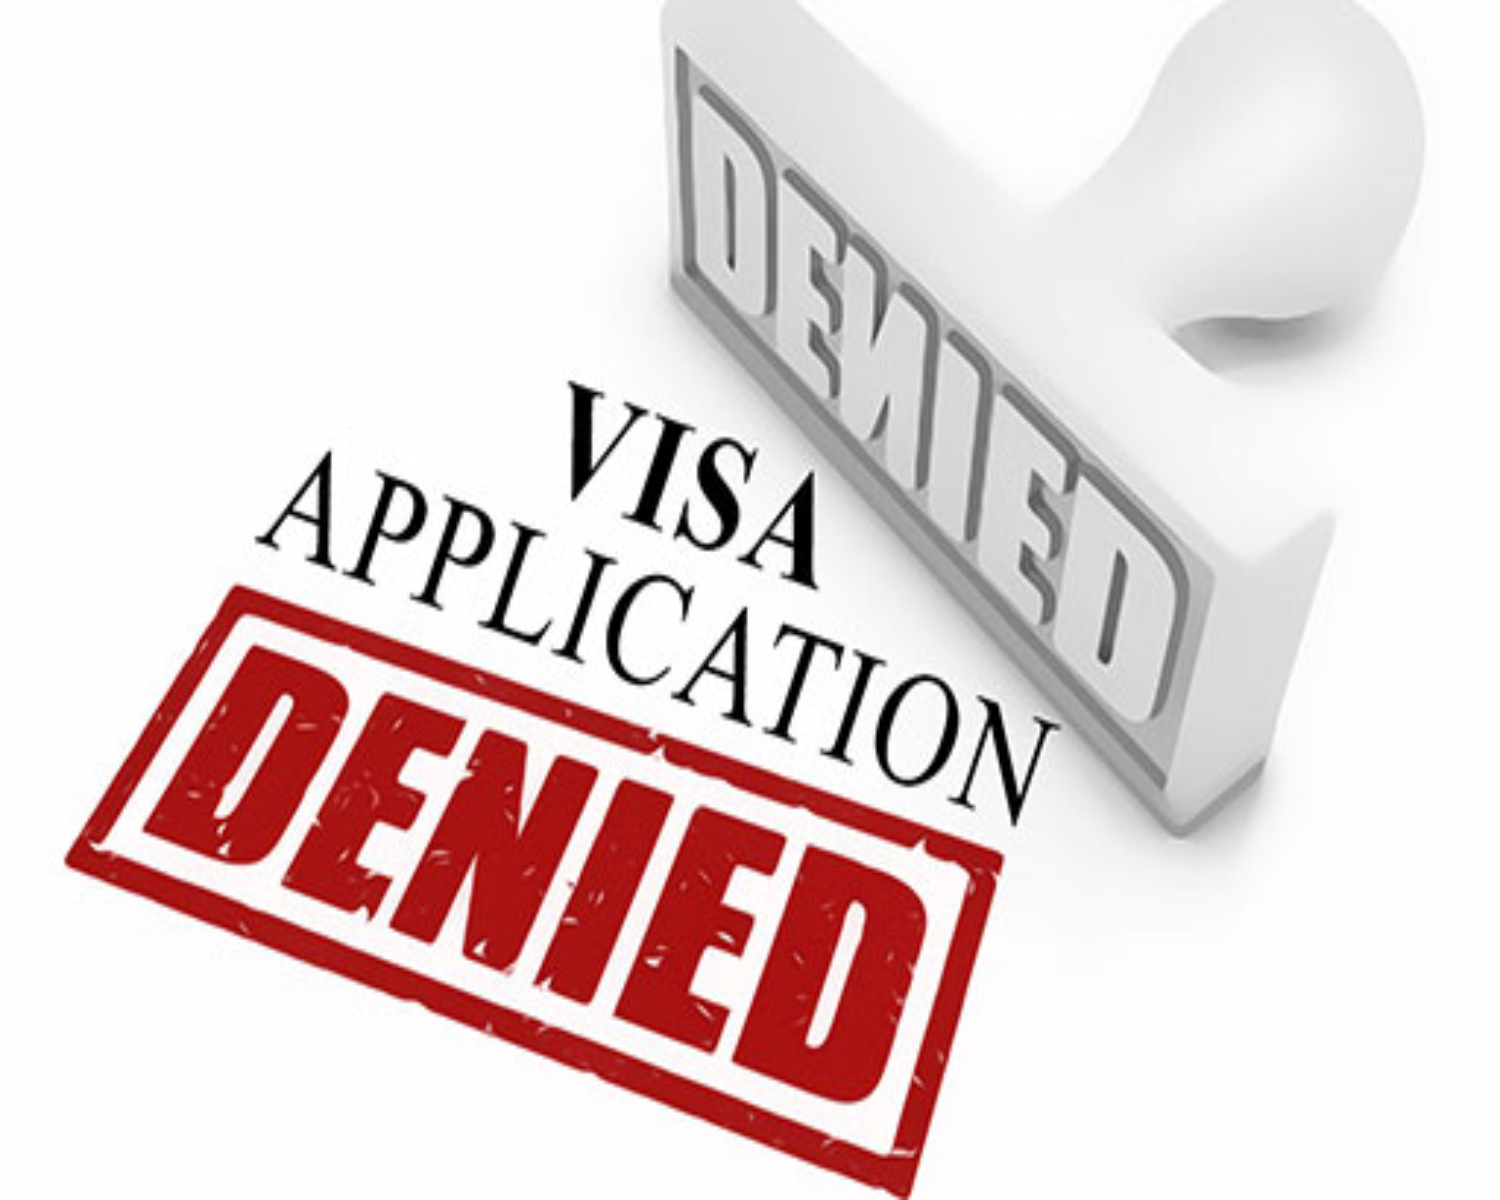 reappliction of visa